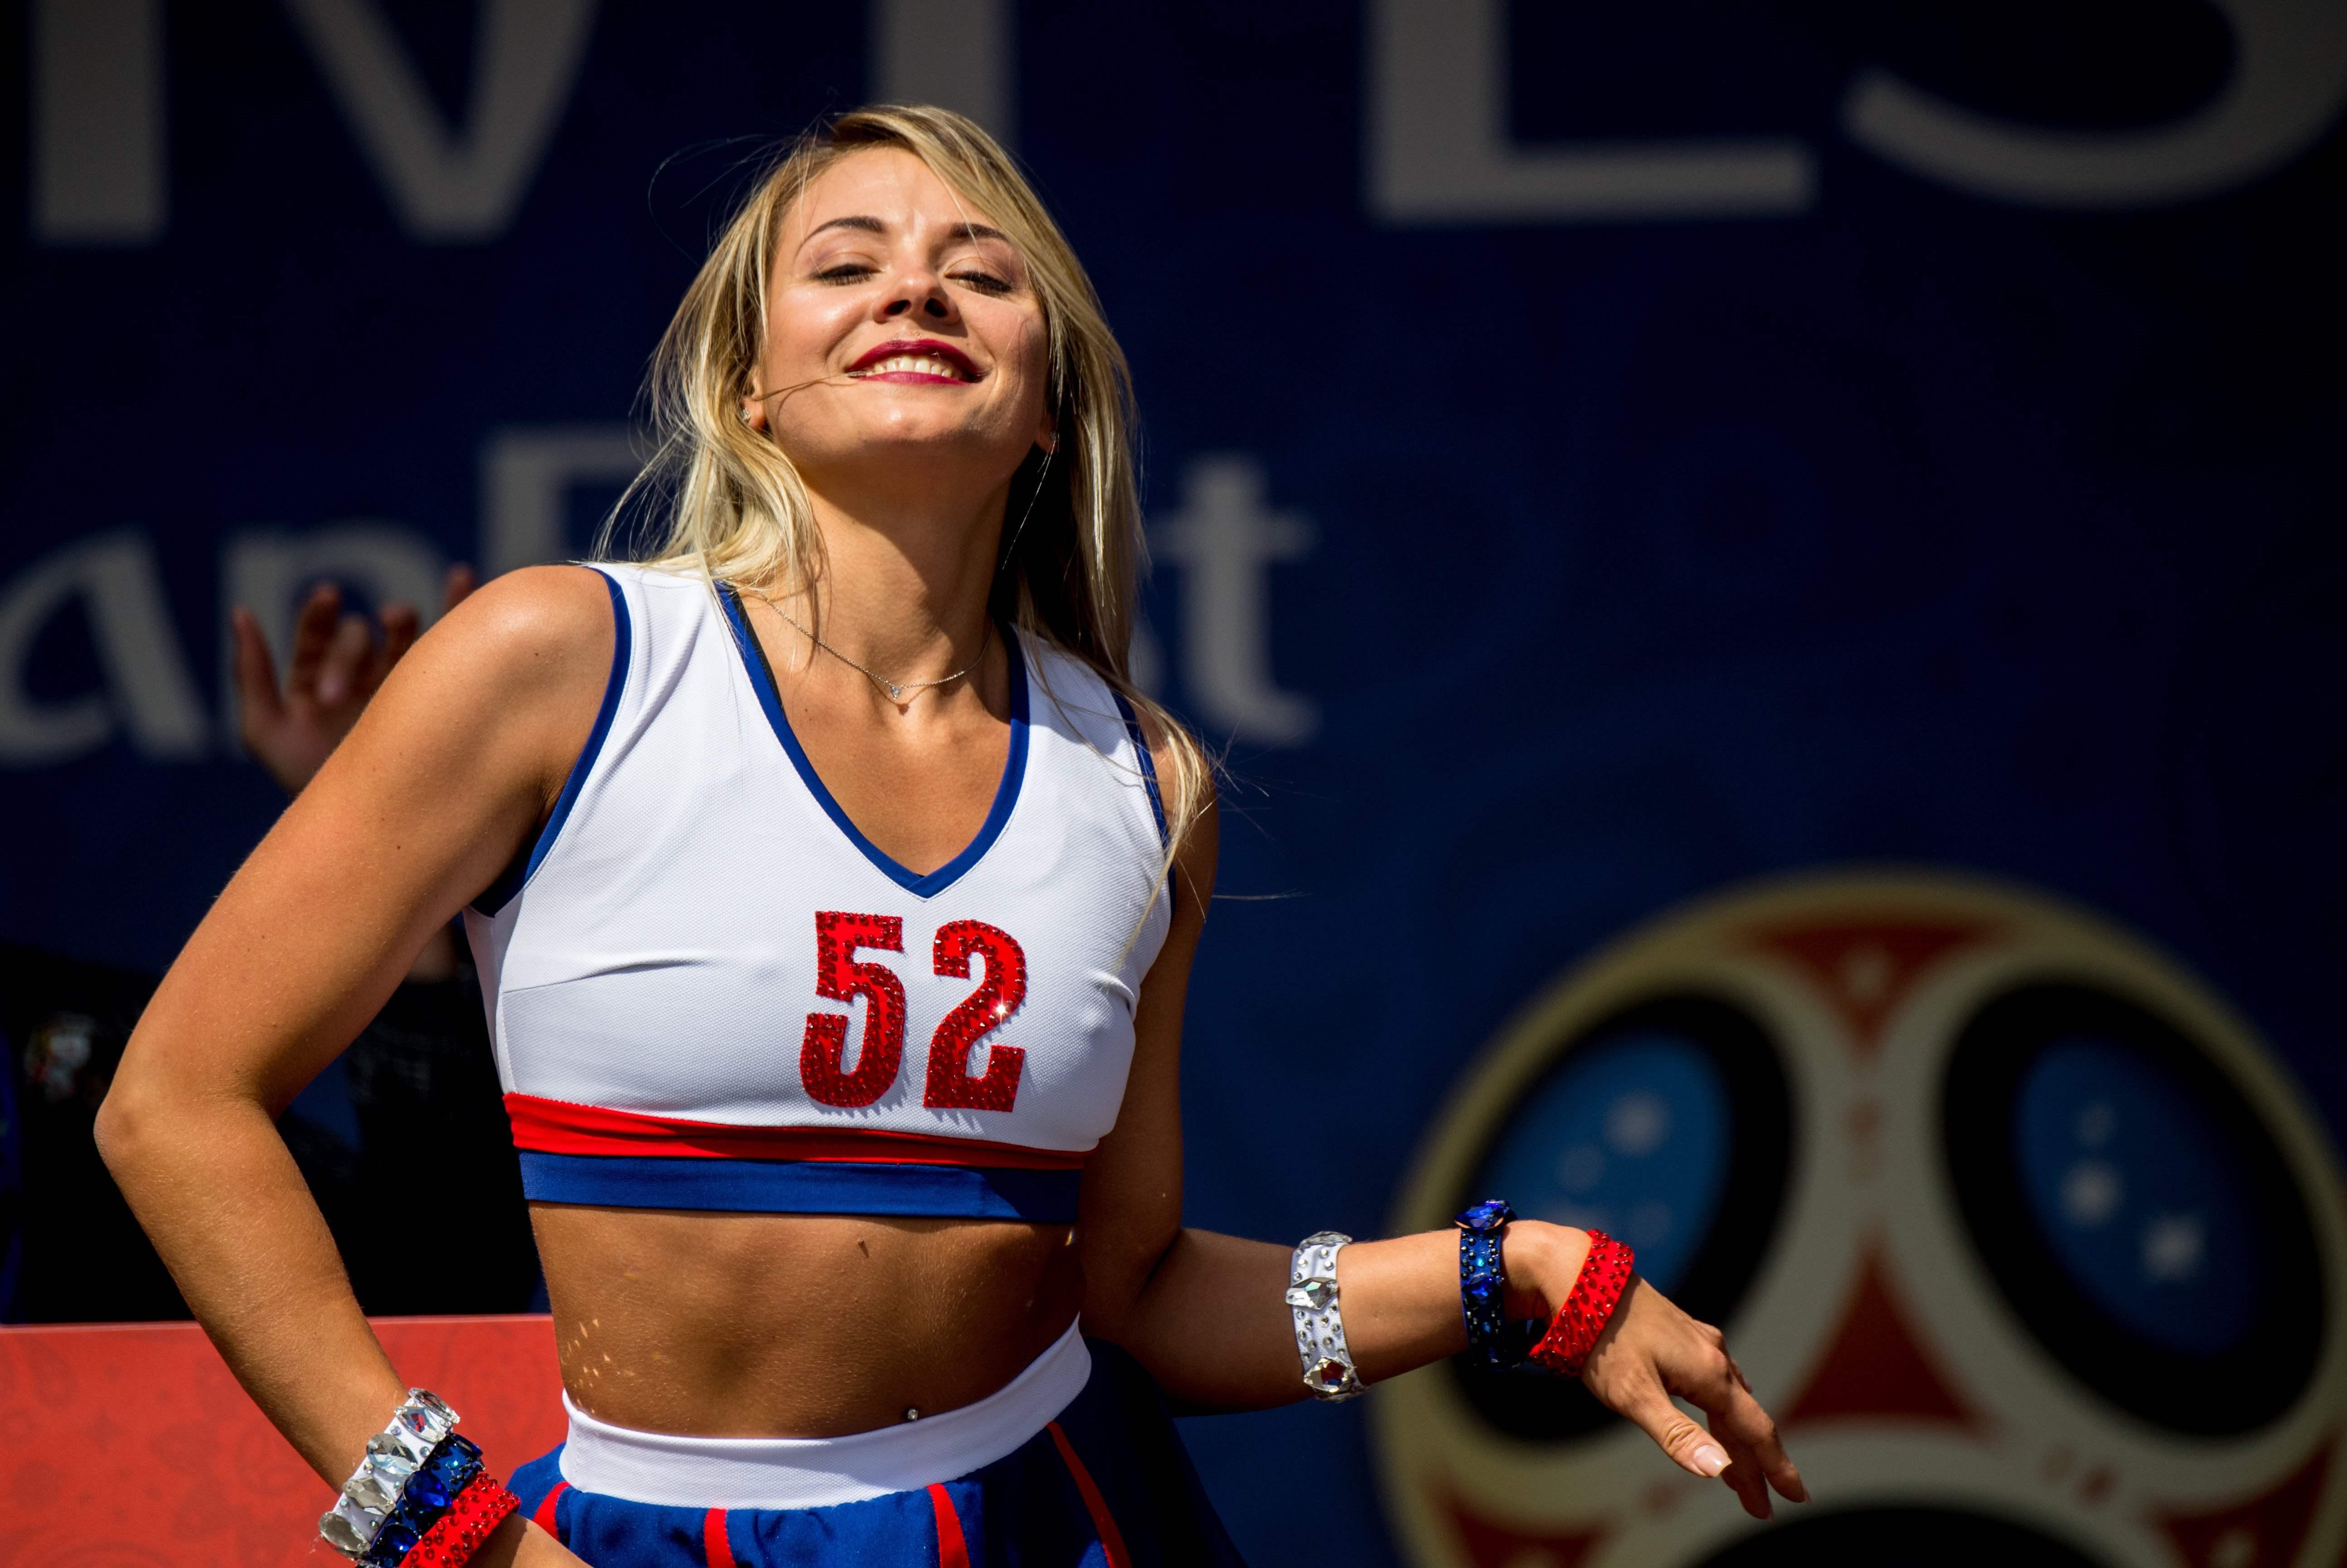 Around 500 dancers took to the turf in Moscow to raise the curtain on what should be a riveting summer of football